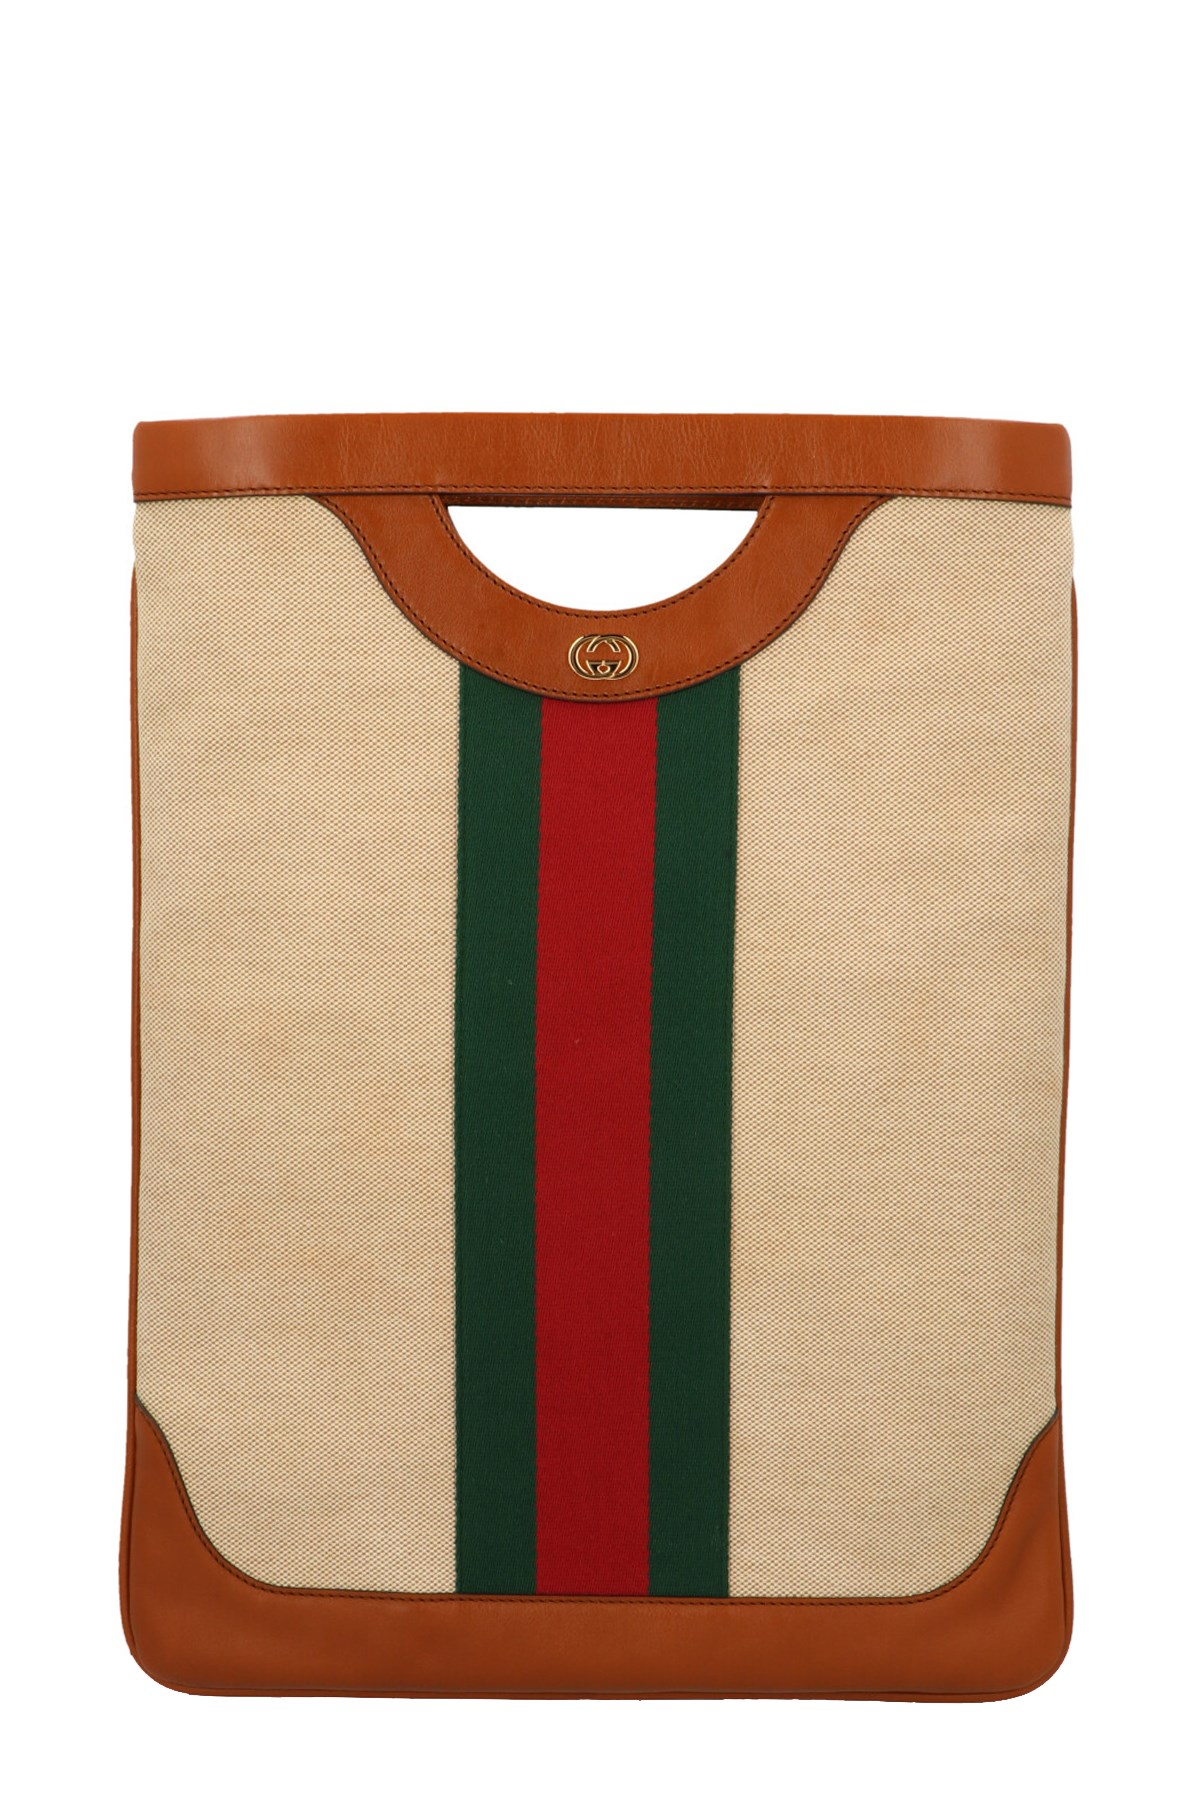 b642a9fba2c0 gucci 'GG vintage' tote available on julian-fashion.com - 89704